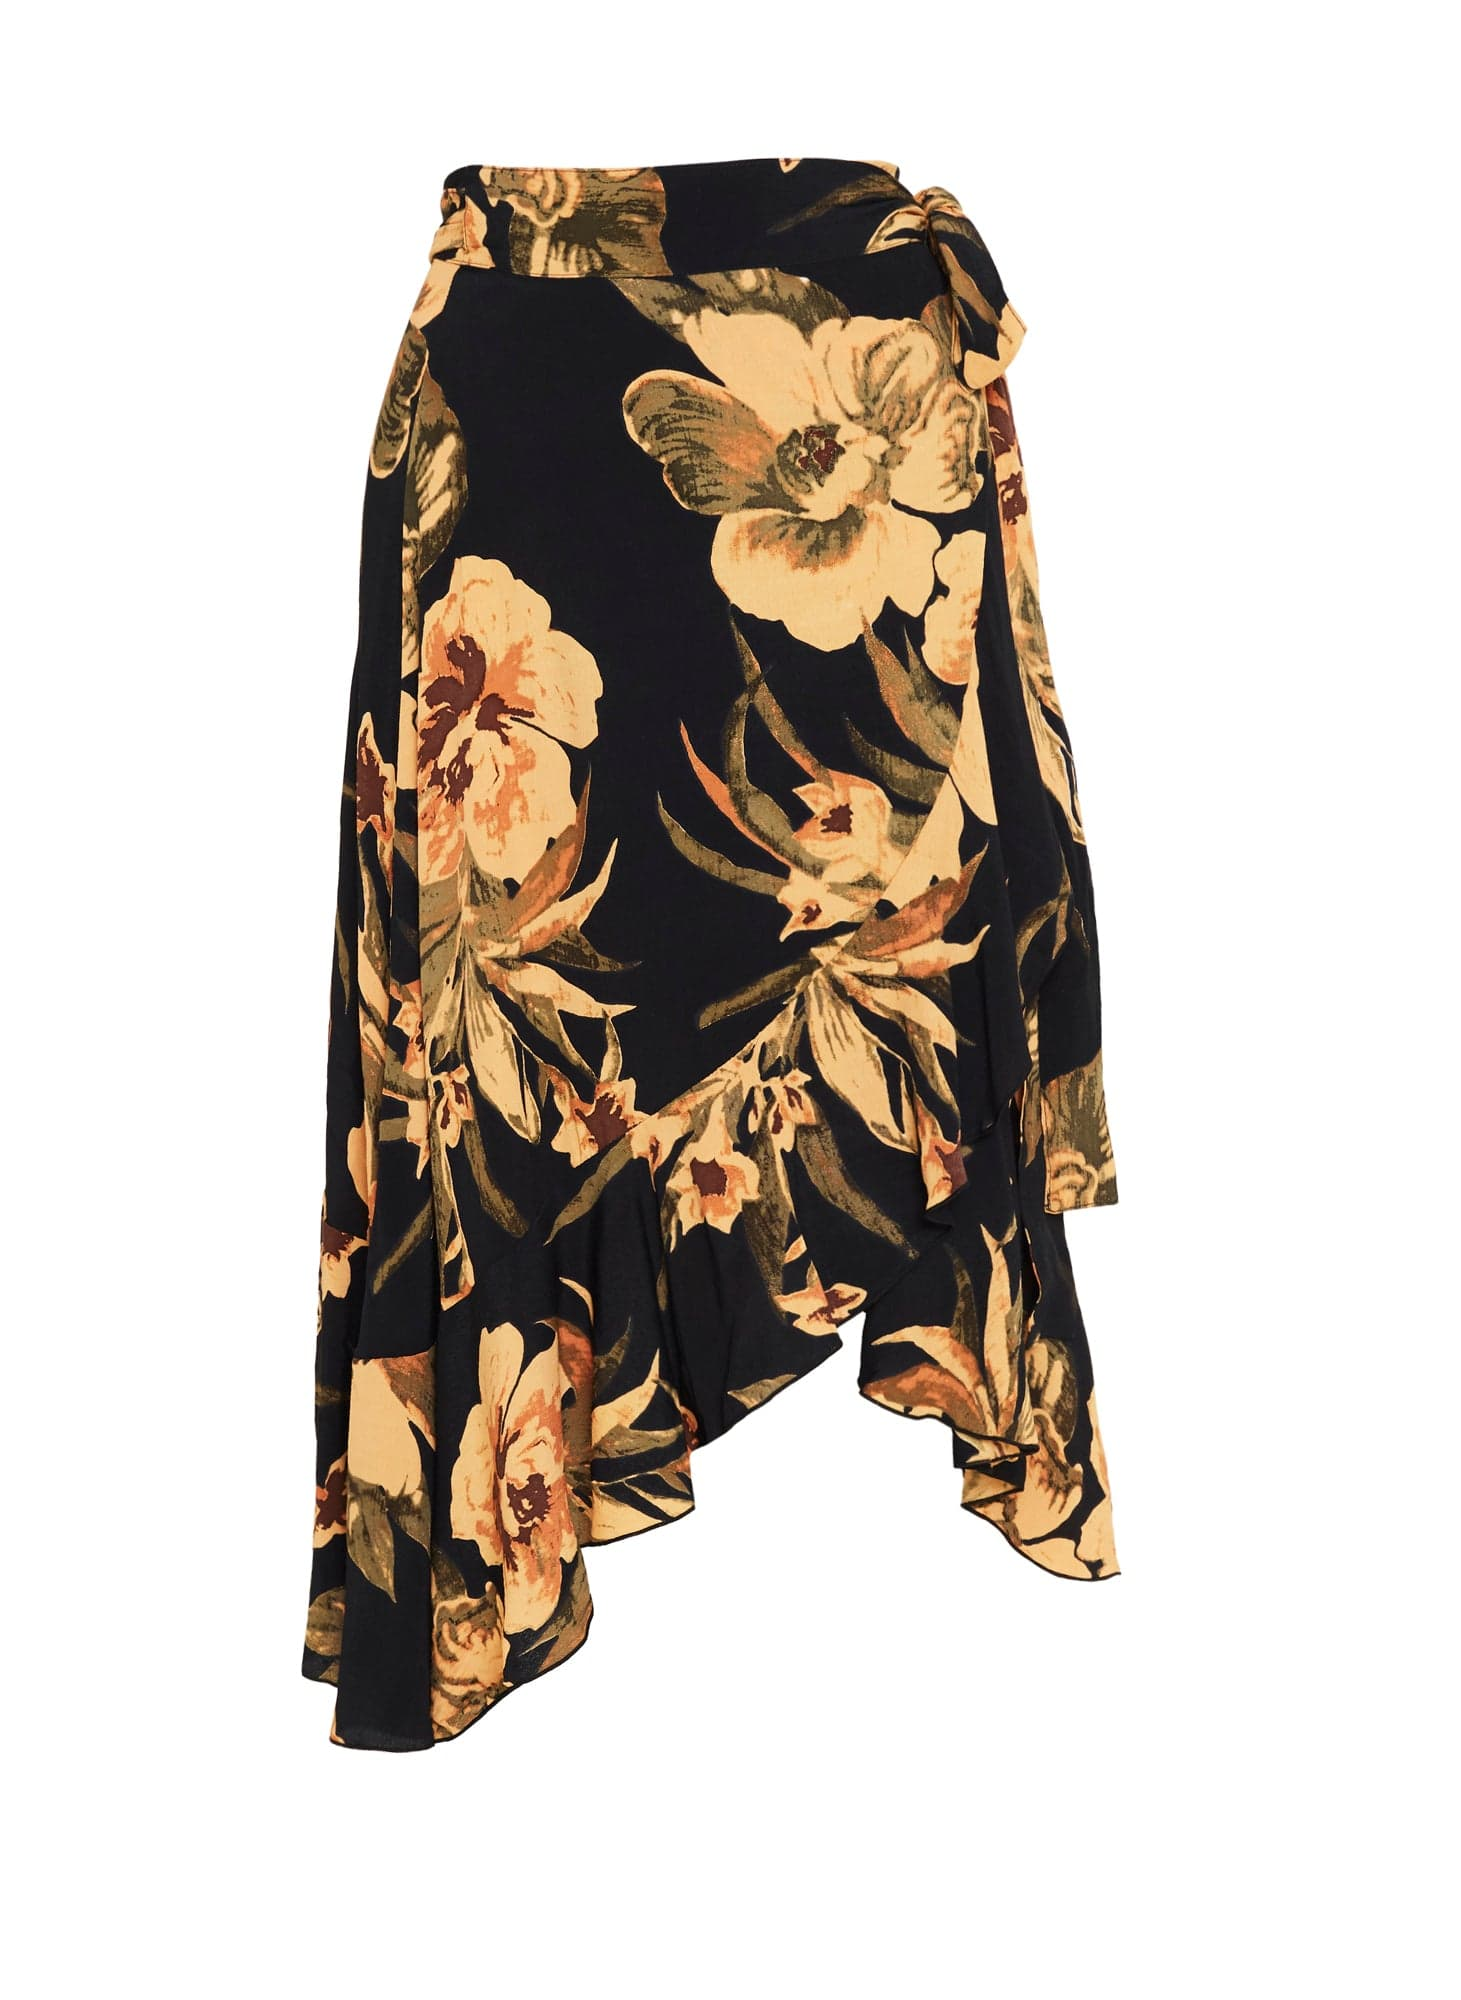 CARIBBEAN PRINT - TRAMONTI SKIRT - FINAL SALE